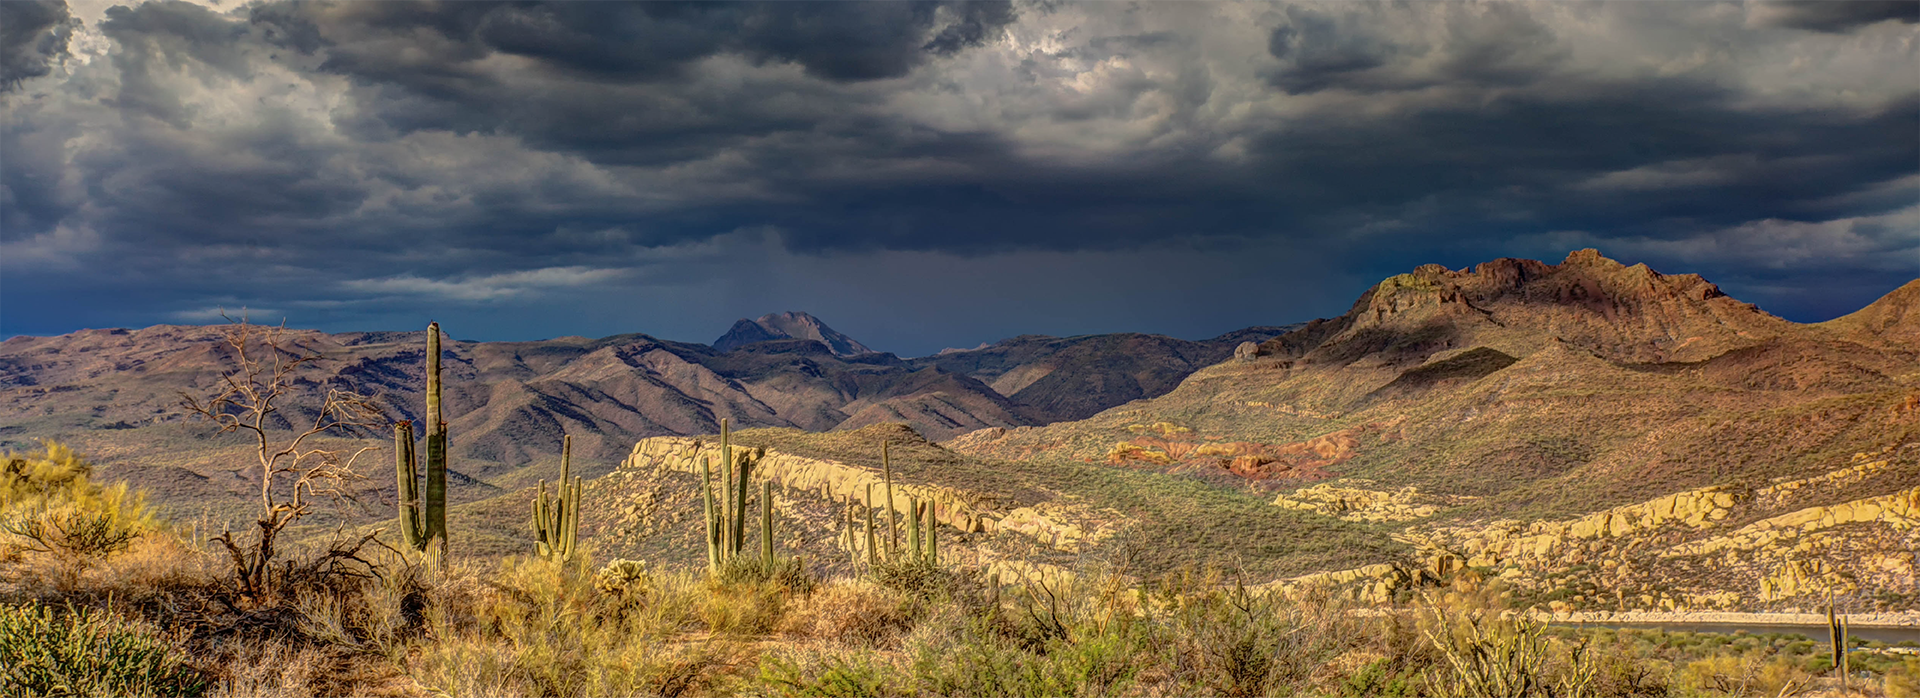 The Drought Preparedness Annual Report: a much-overlooked, but invaluable, source for info on Arizona's lingering dry spell